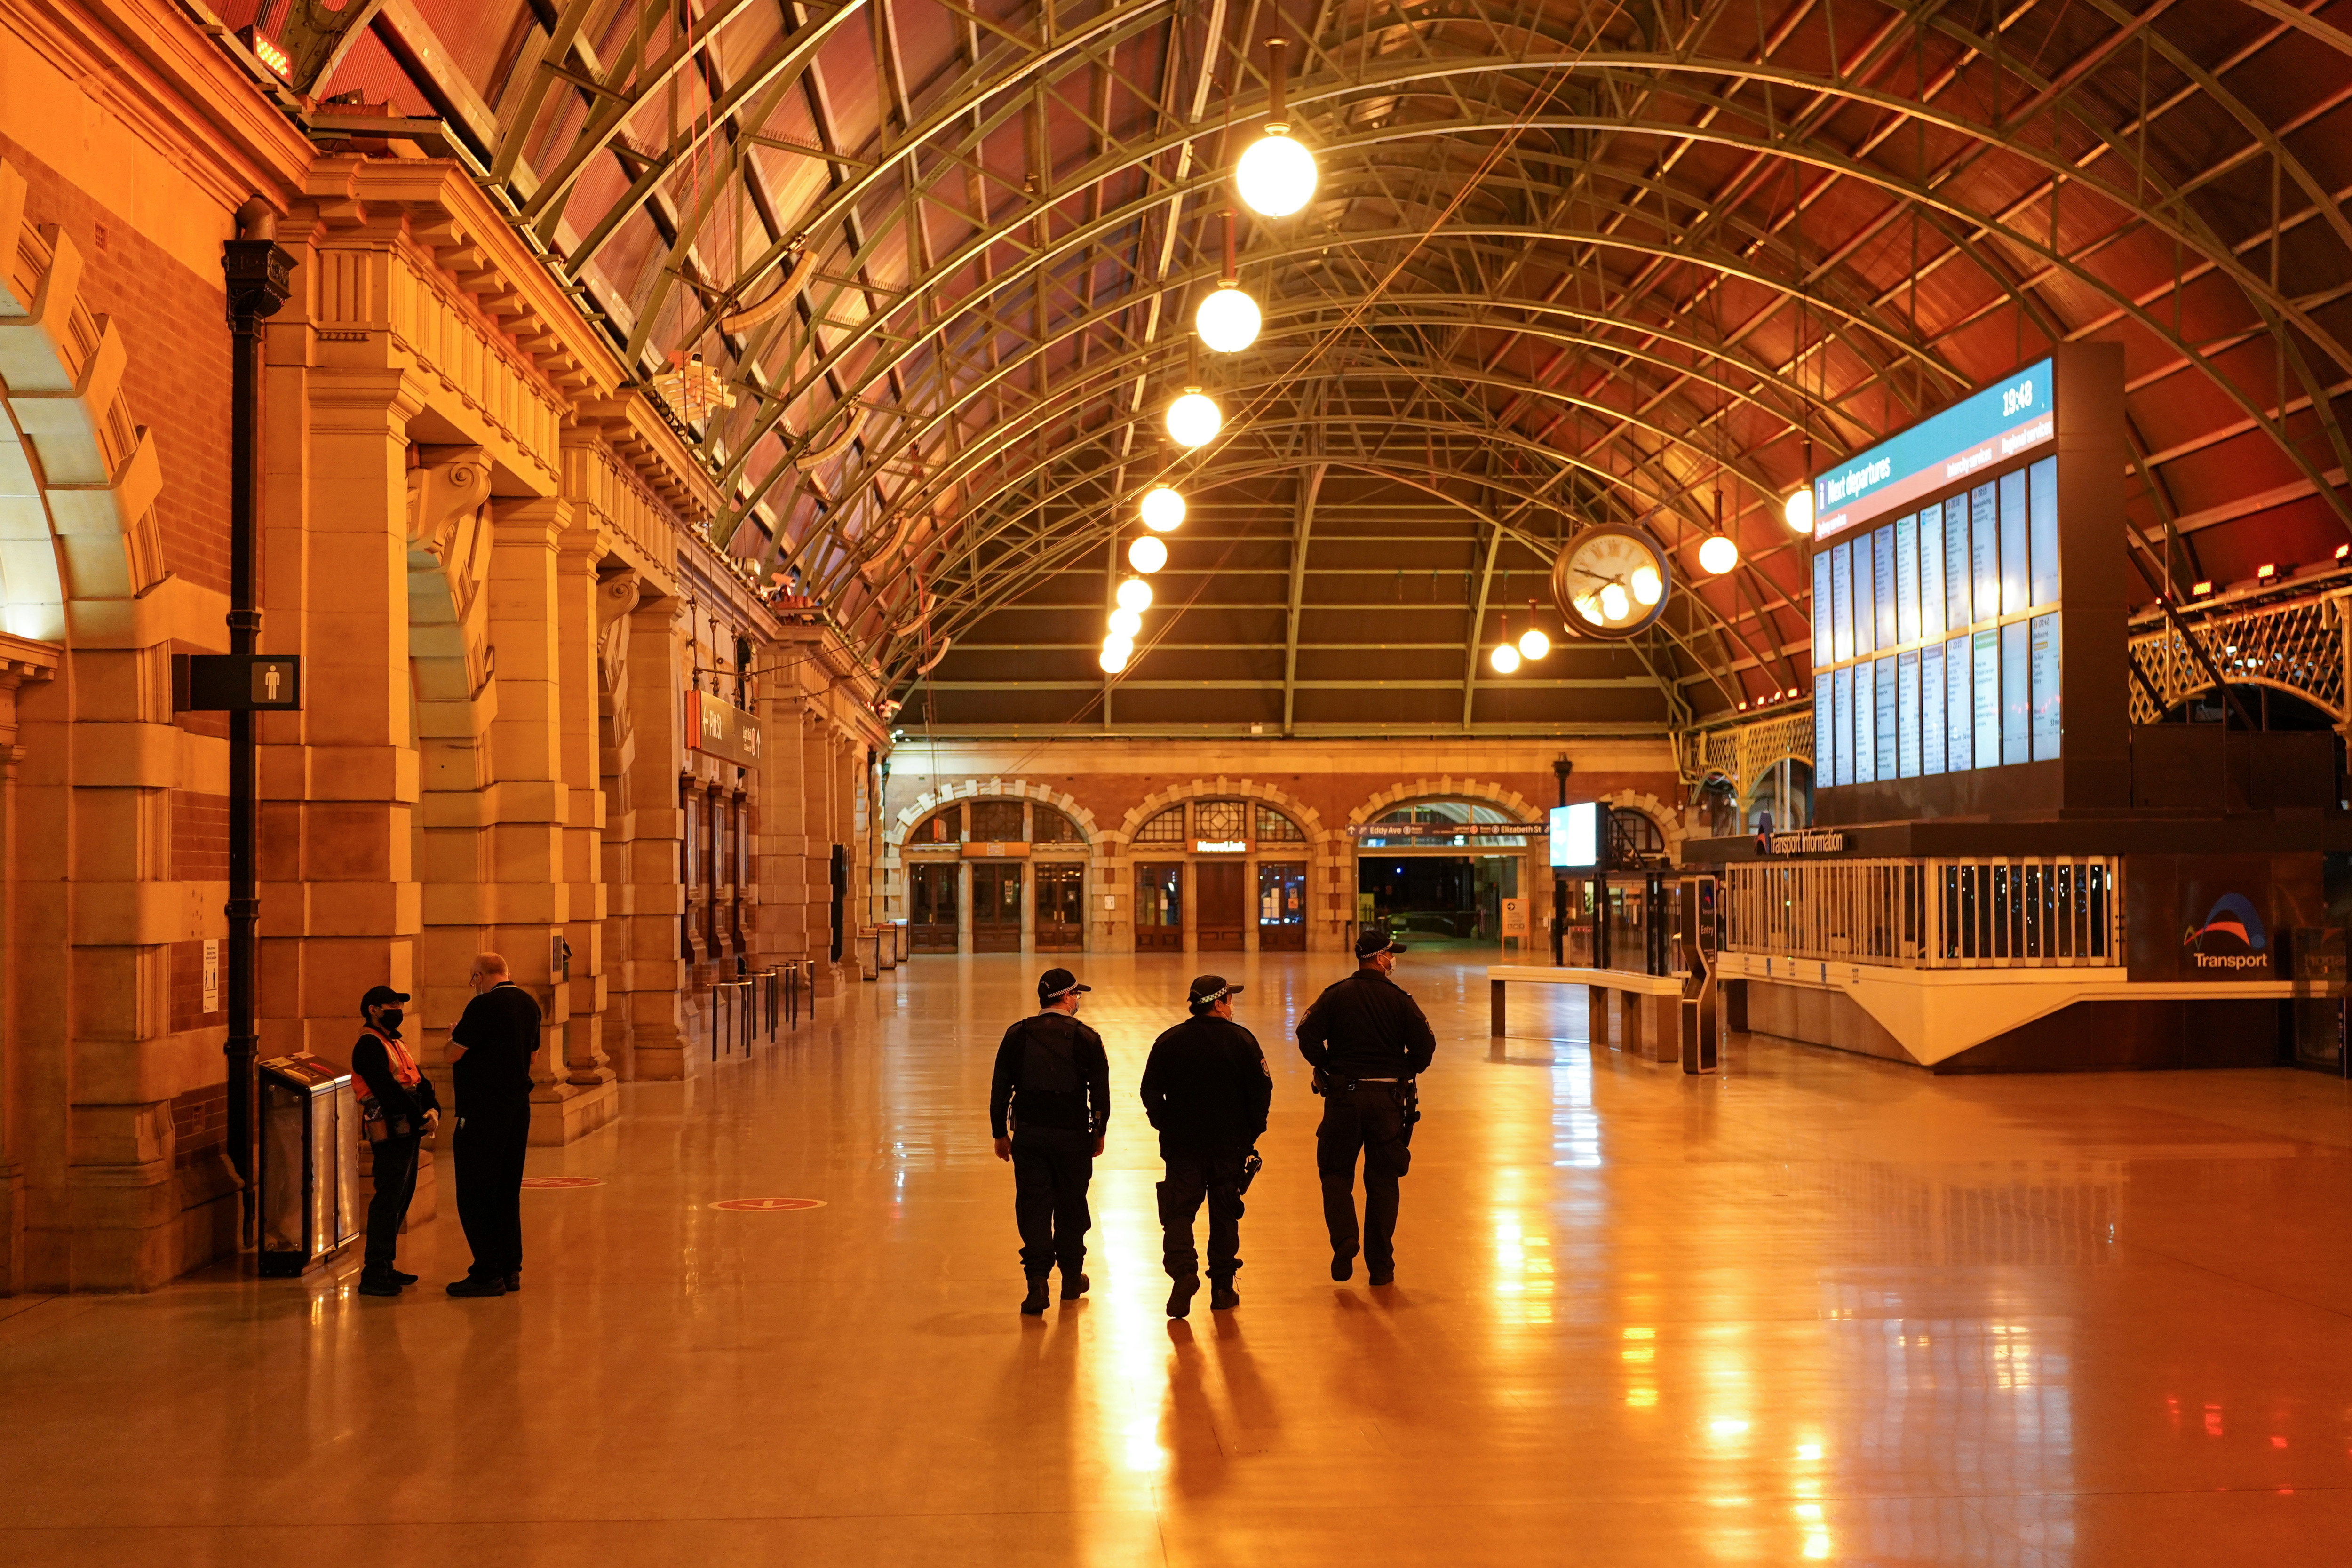 Police officers patrol through the quiet Central Station in the city centre during a lockdown to curb the spread of a coronavirus disease (COVID-19) outbreak in Sydney, Australia, August 12, 2021.  REUTERS/Loren Elliott